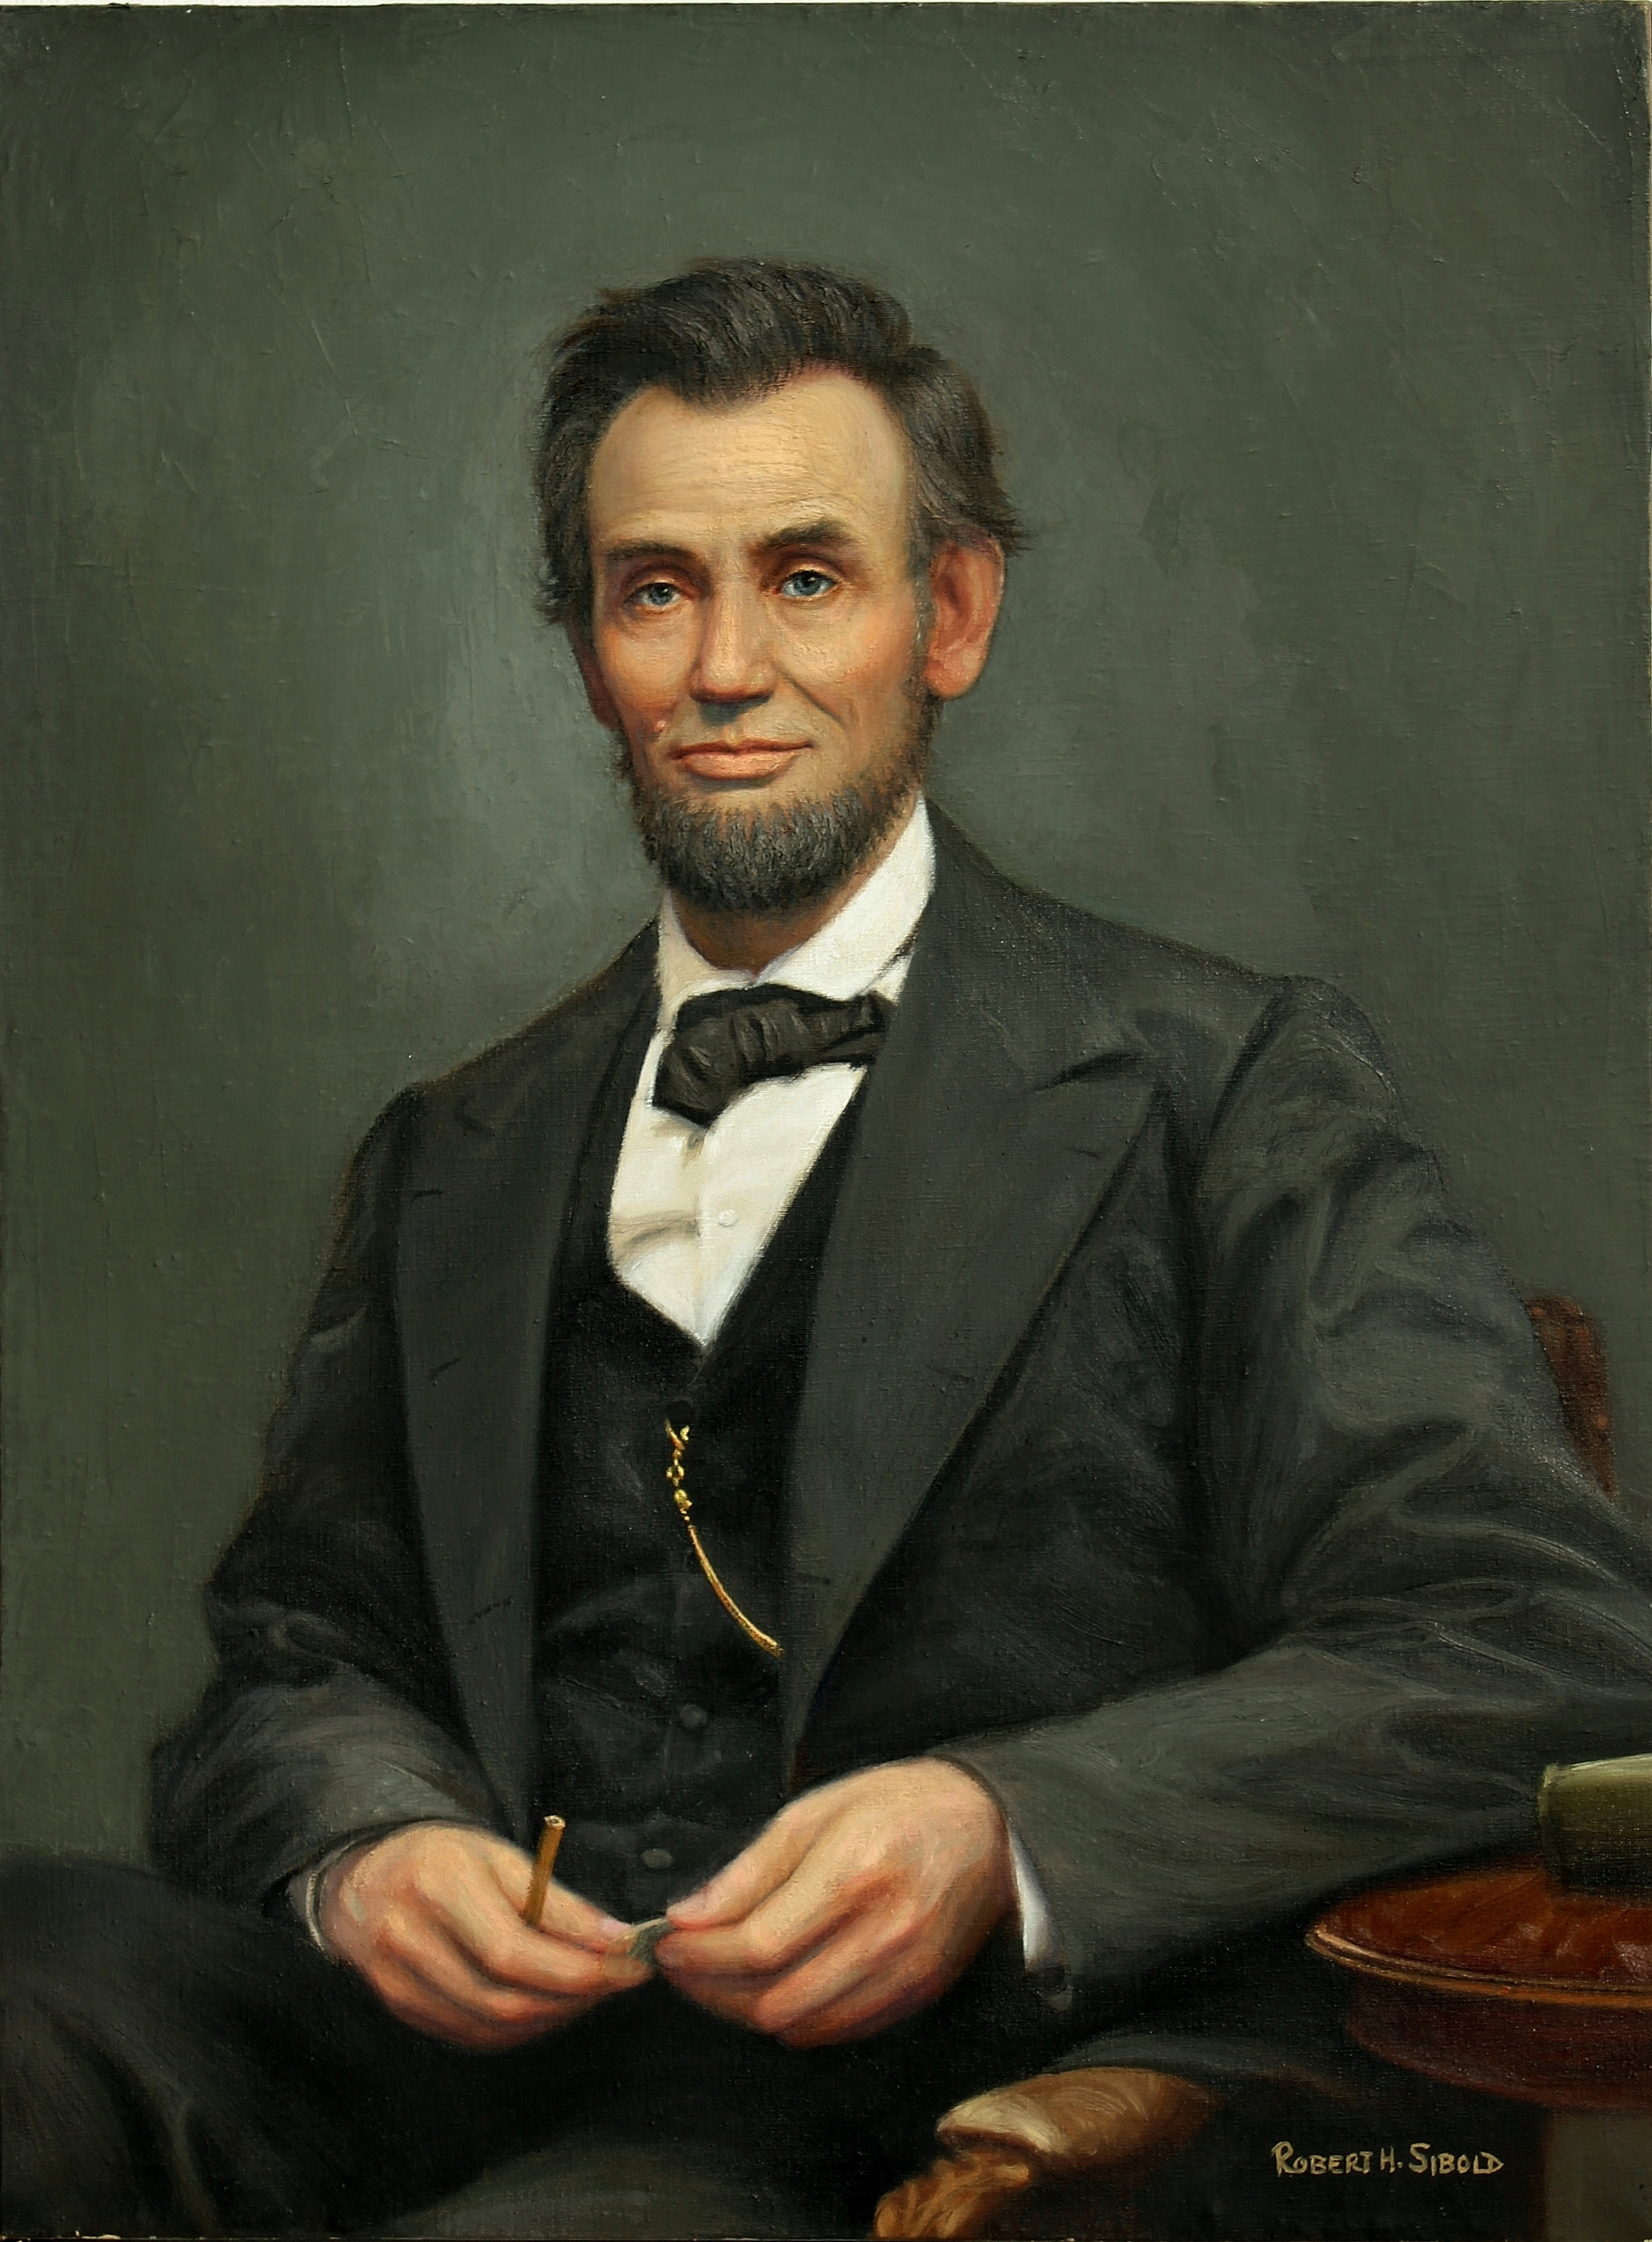 interview with abraham lincoln Interview with abraham lincoln - free download as pdf file (pdf), text file (txt) or read online for free.